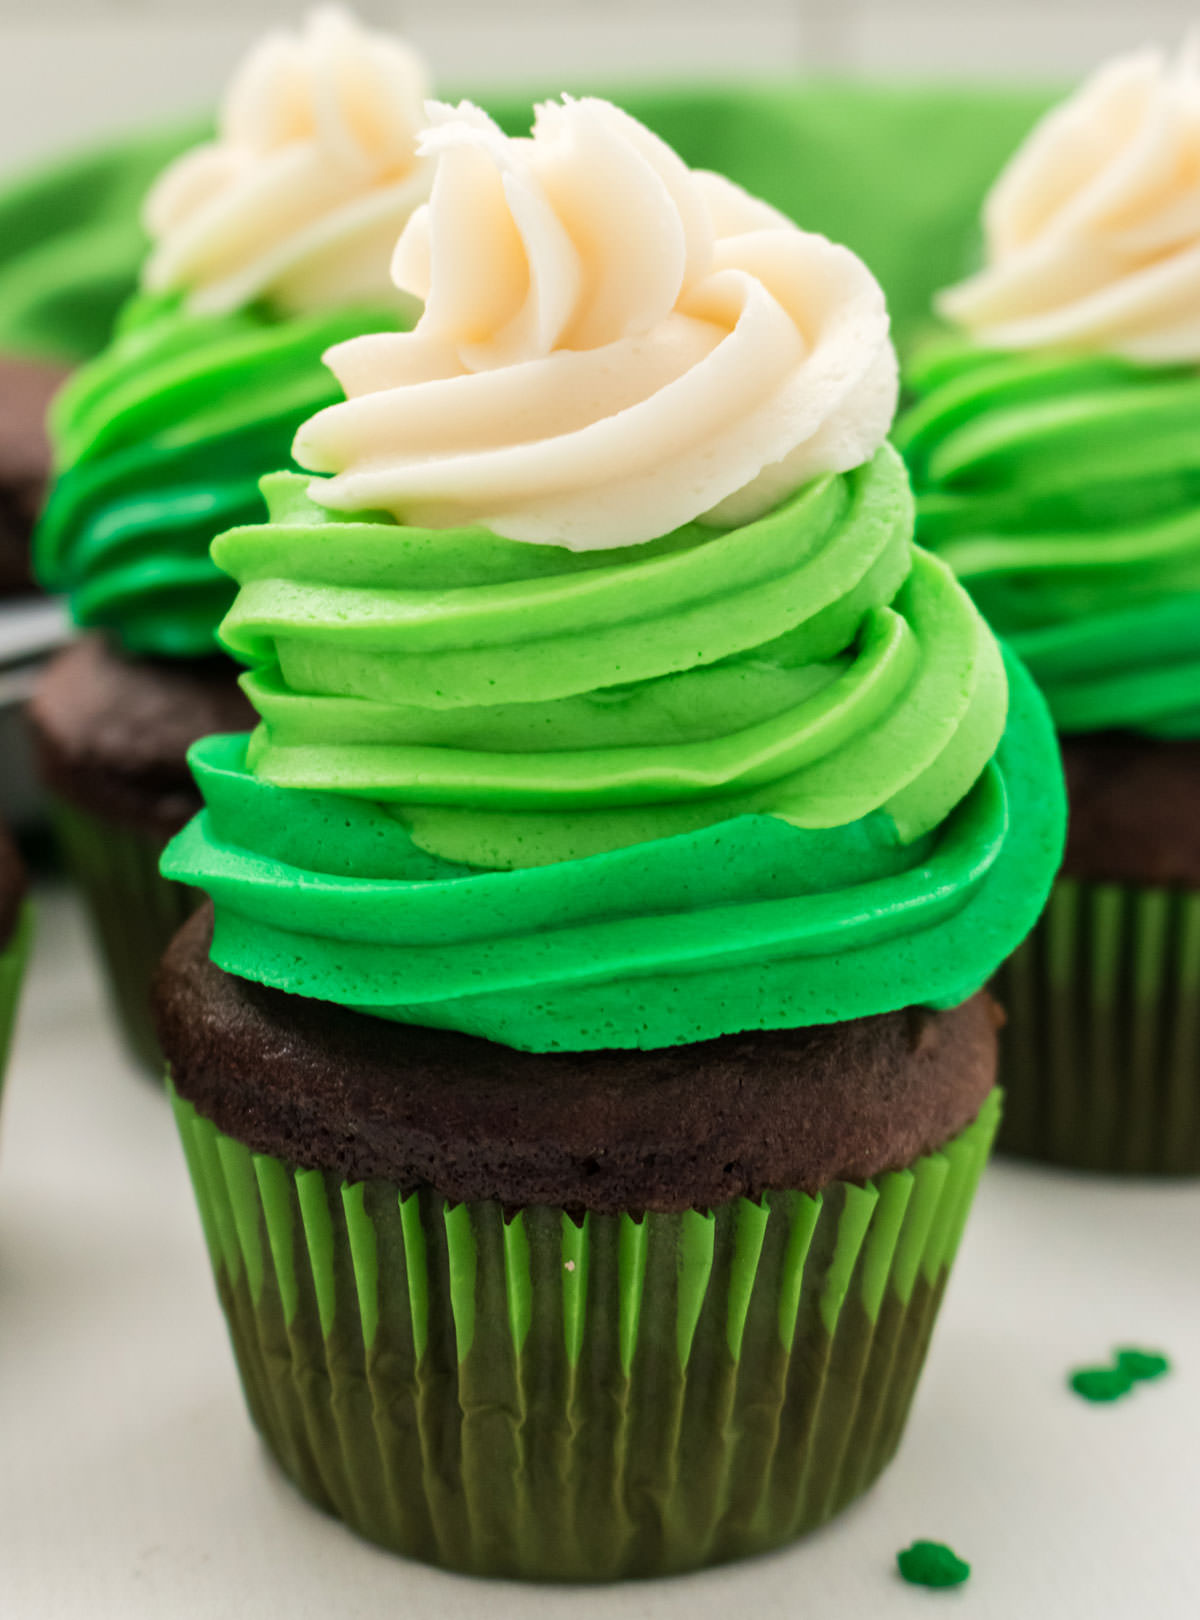 Closeup on a St. Patrick's Day Cupcake featuring a chocolate cupcake with three swirls of dark green, light green and white buttercream frosting.